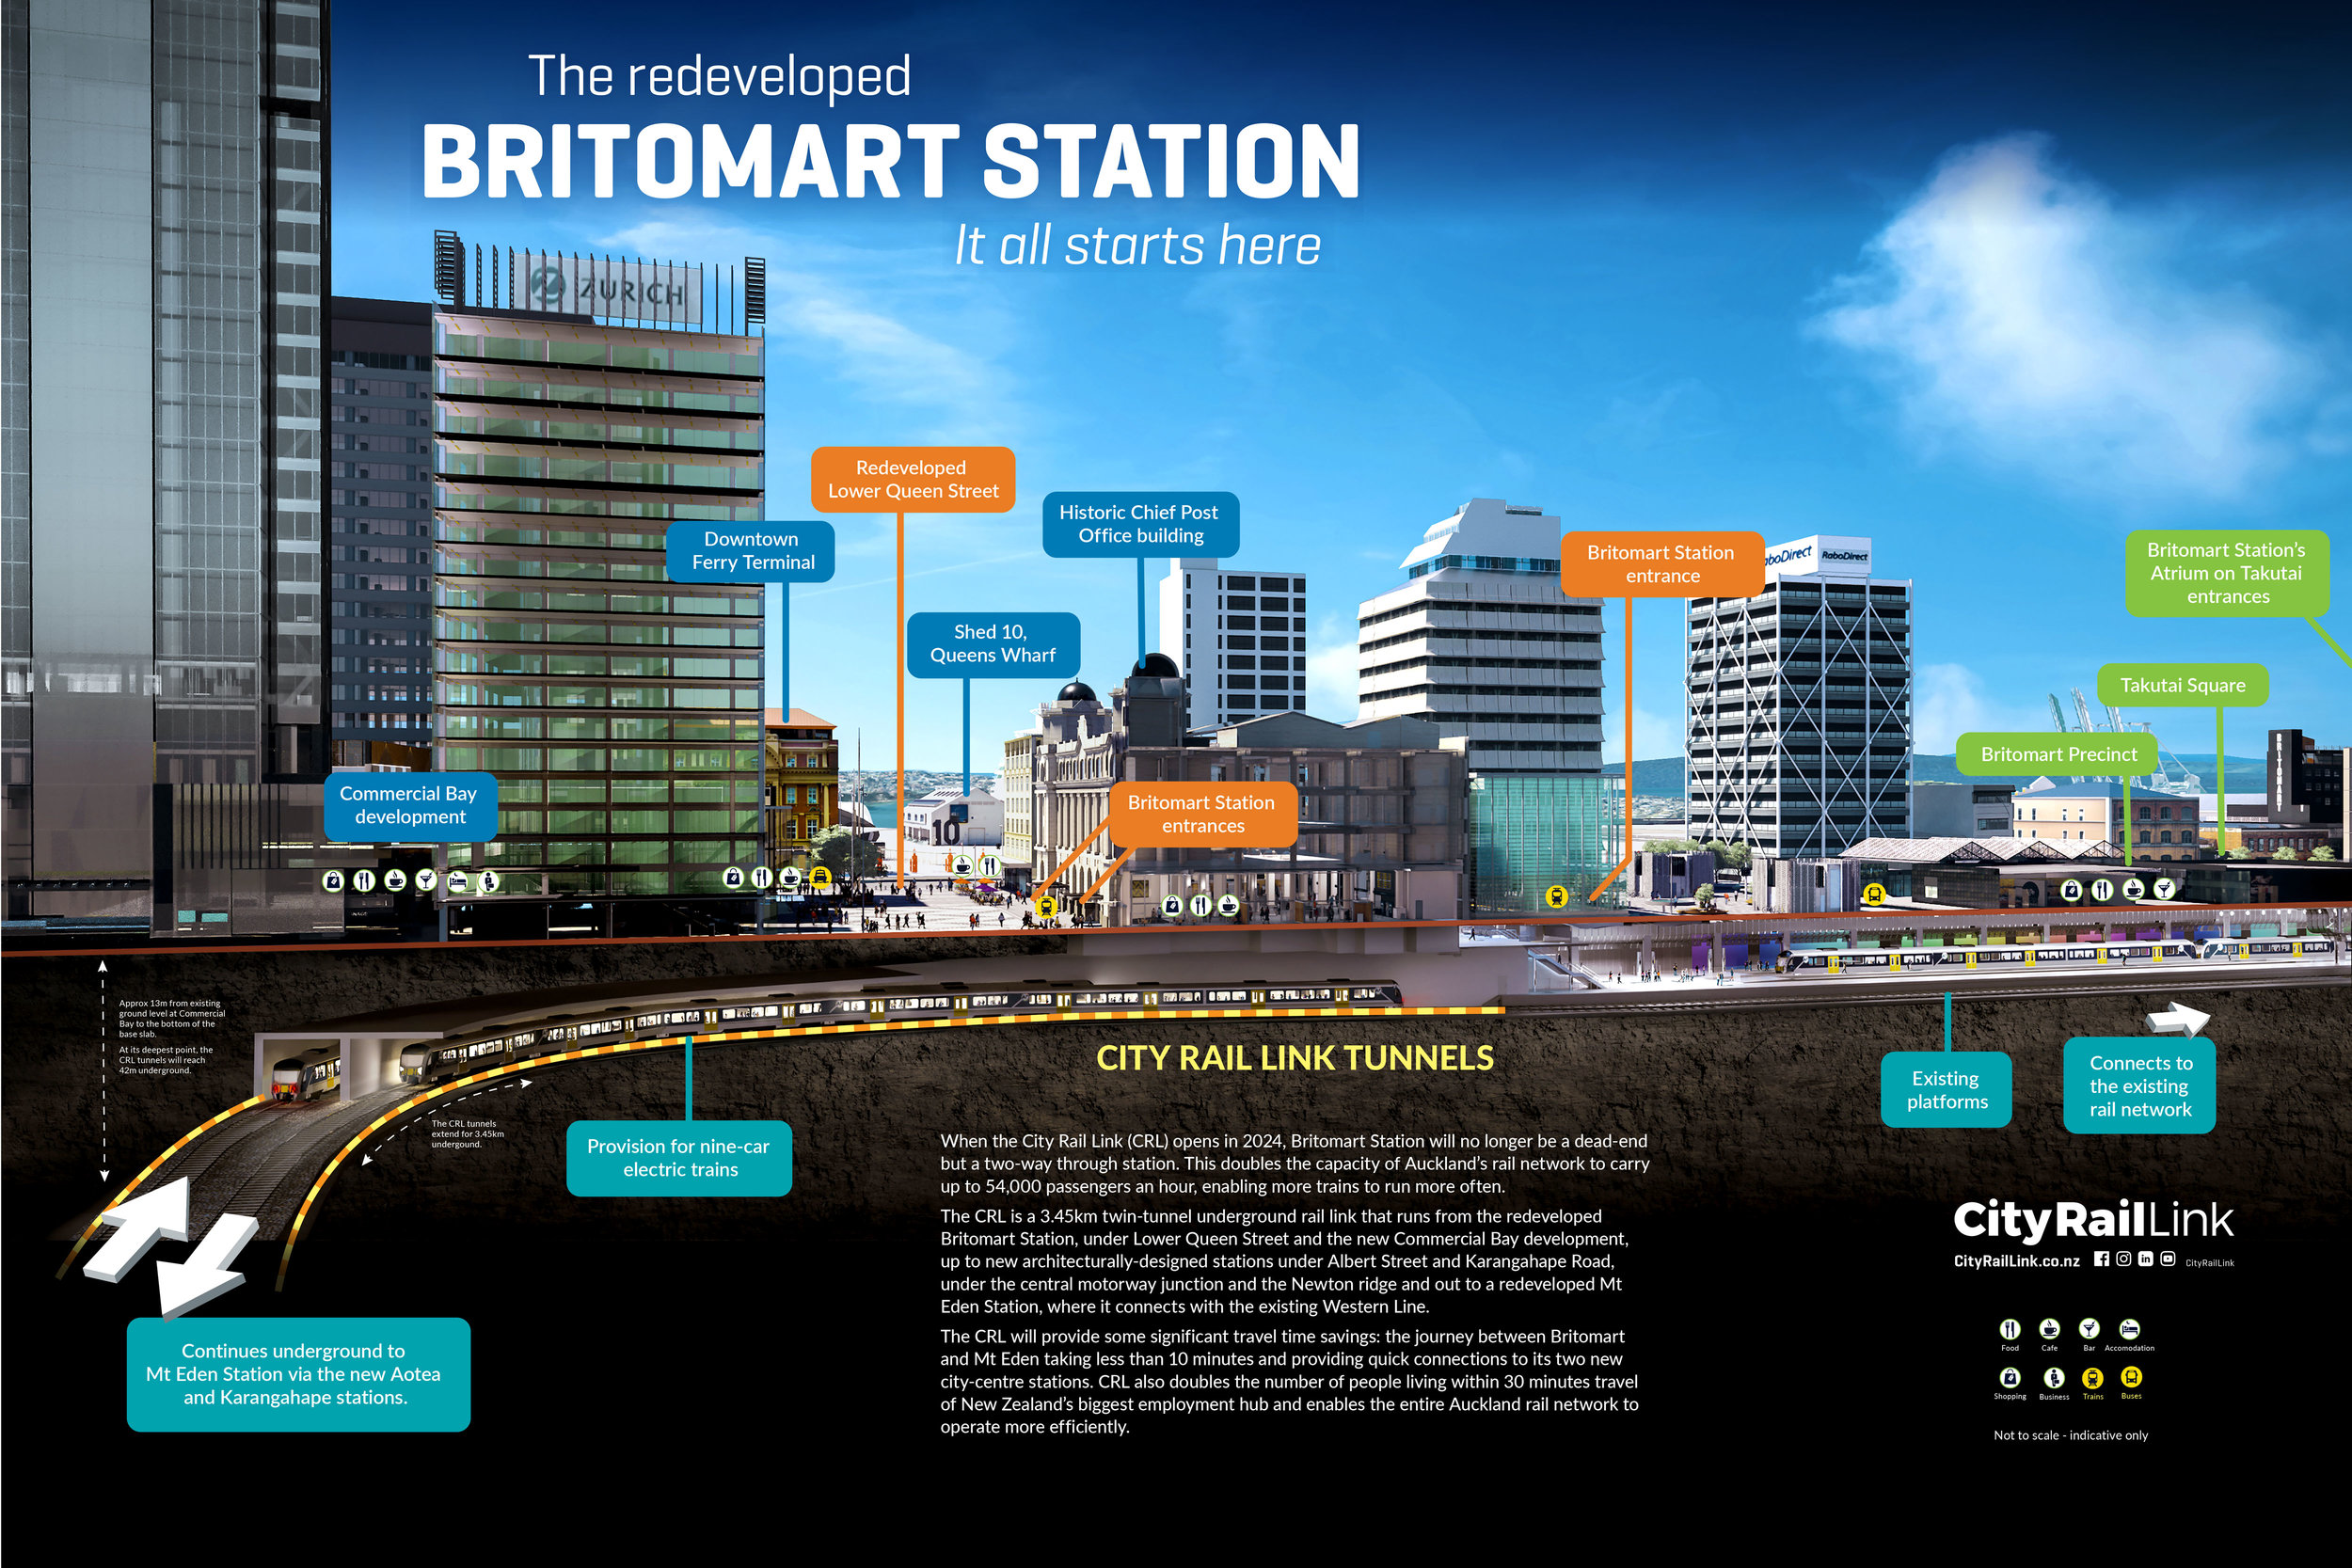 Britomart-Cross-Section Hoaridng.jpg